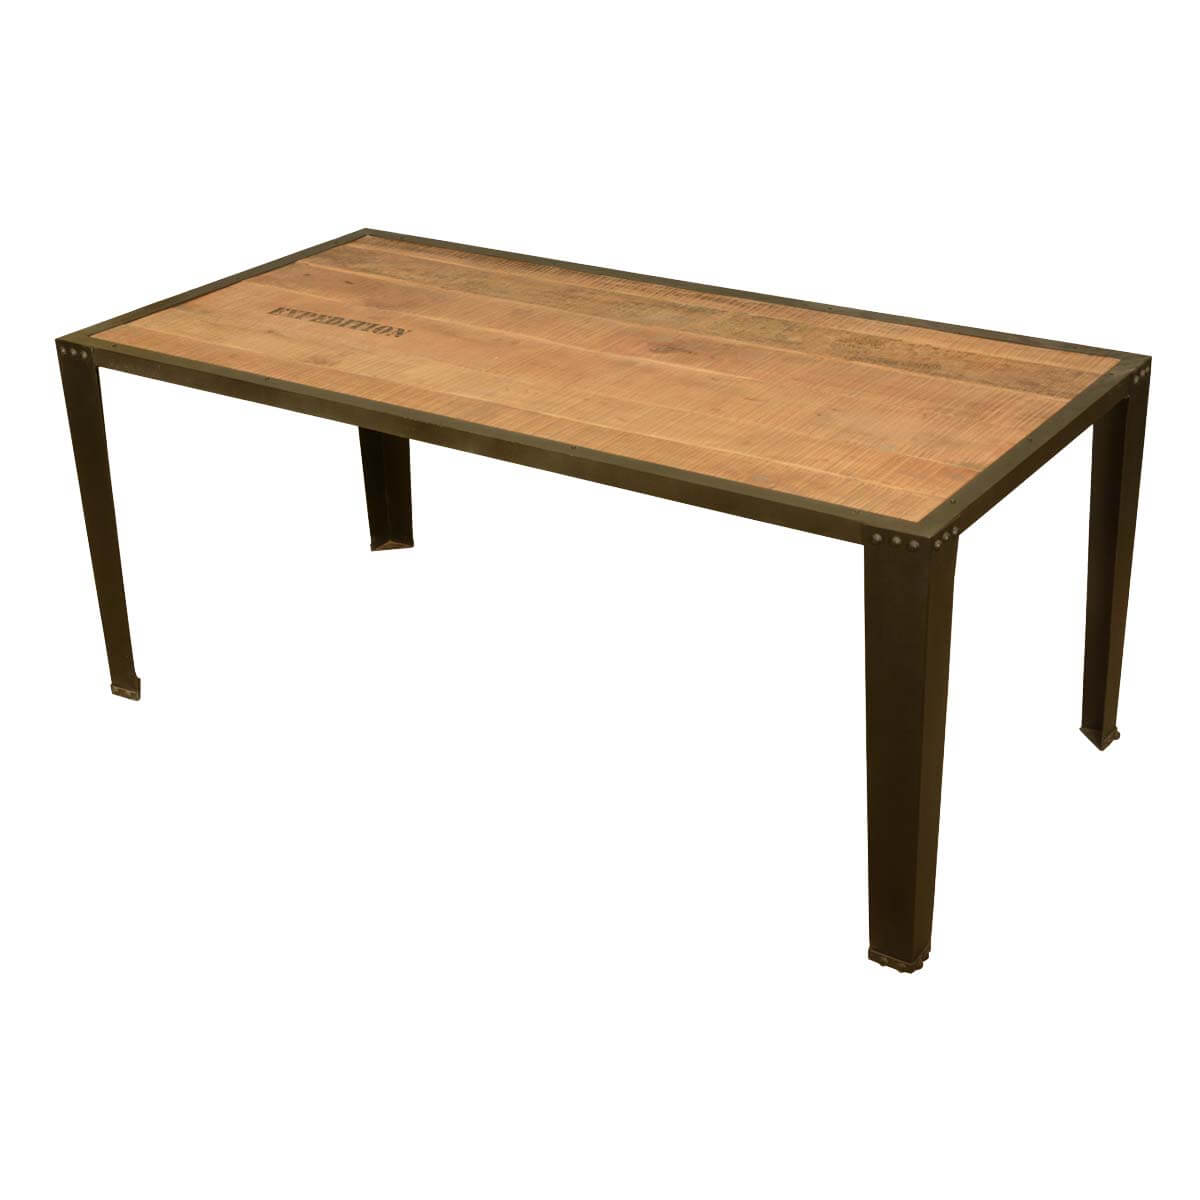 Rustic Industrial Iron And Acacia Wood Rectangular Dining Table